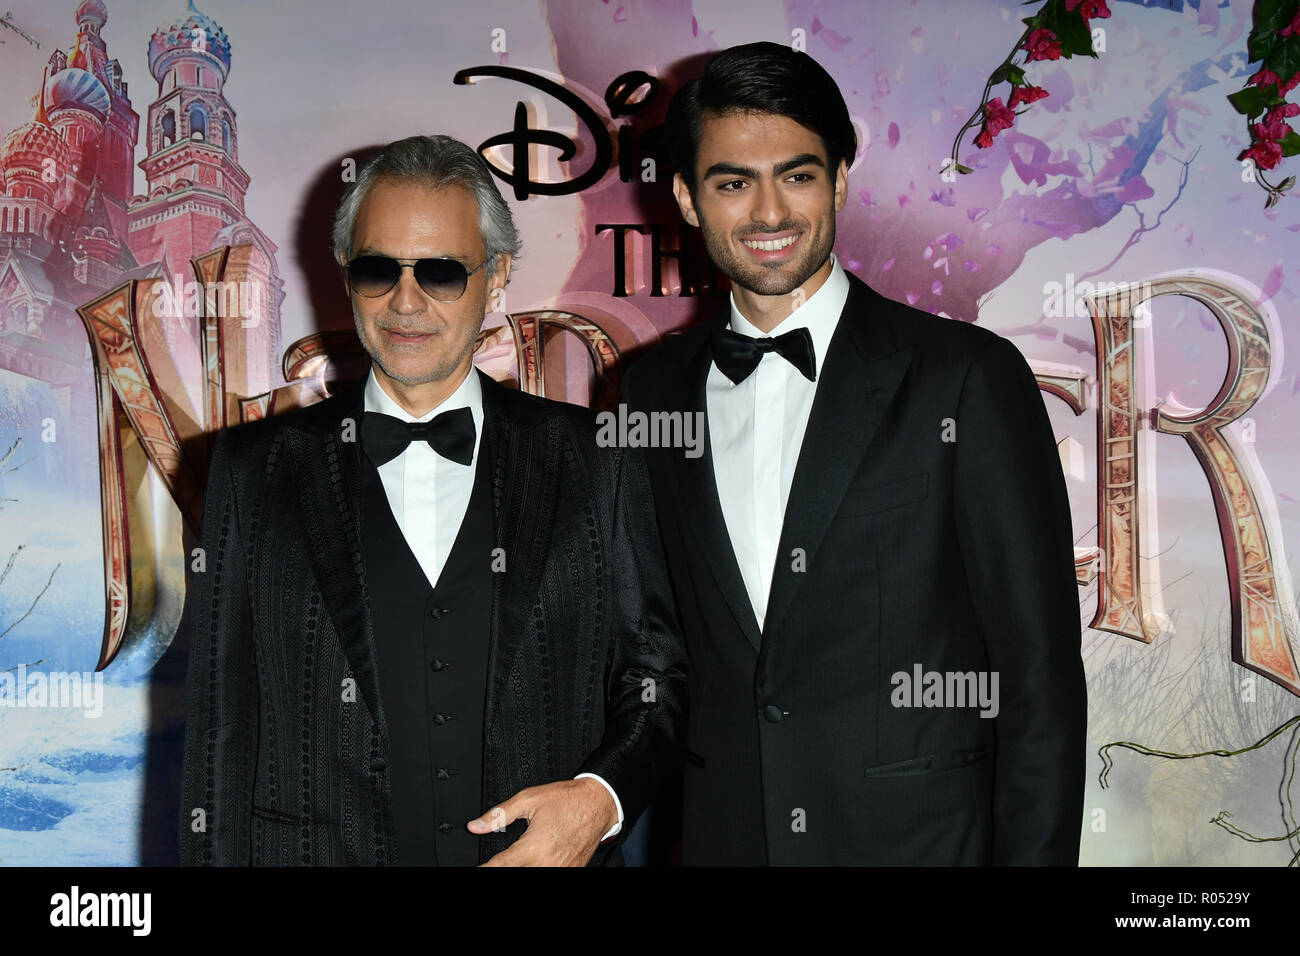 Andrea Bocelli attend The Nutcracker and the Four Realms - UK premiere at Vue Westfield, Westfield Shopping Centre, Ariel Way on 1st Nov 2018, London, UK. - Stock Image